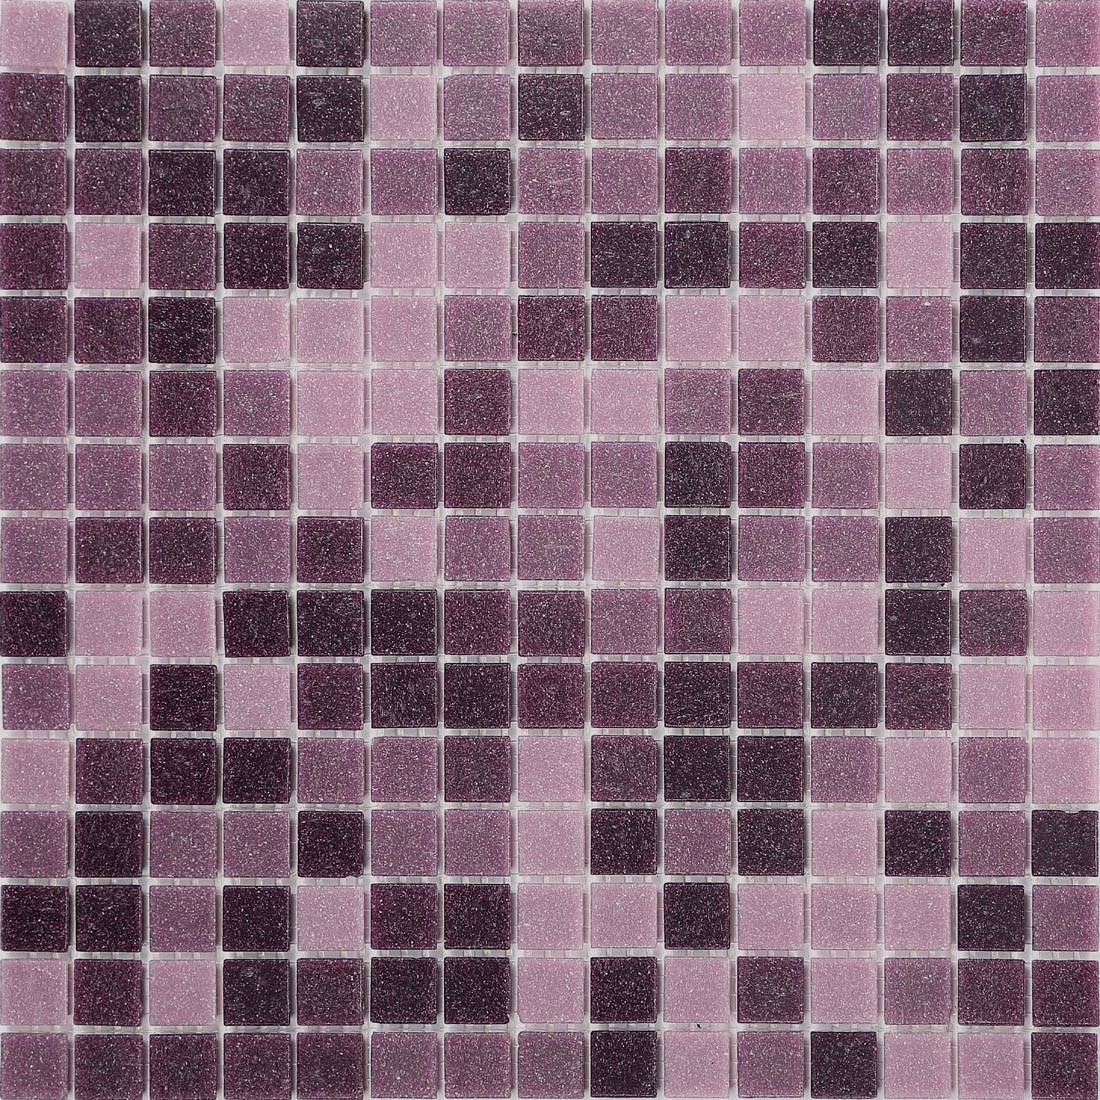 1qm mosaik wand fliesen matte glas lila pink bad dusche schwimmbad mt0108x10 ebay. Black Bedroom Furniture Sets. Home Design Ideas